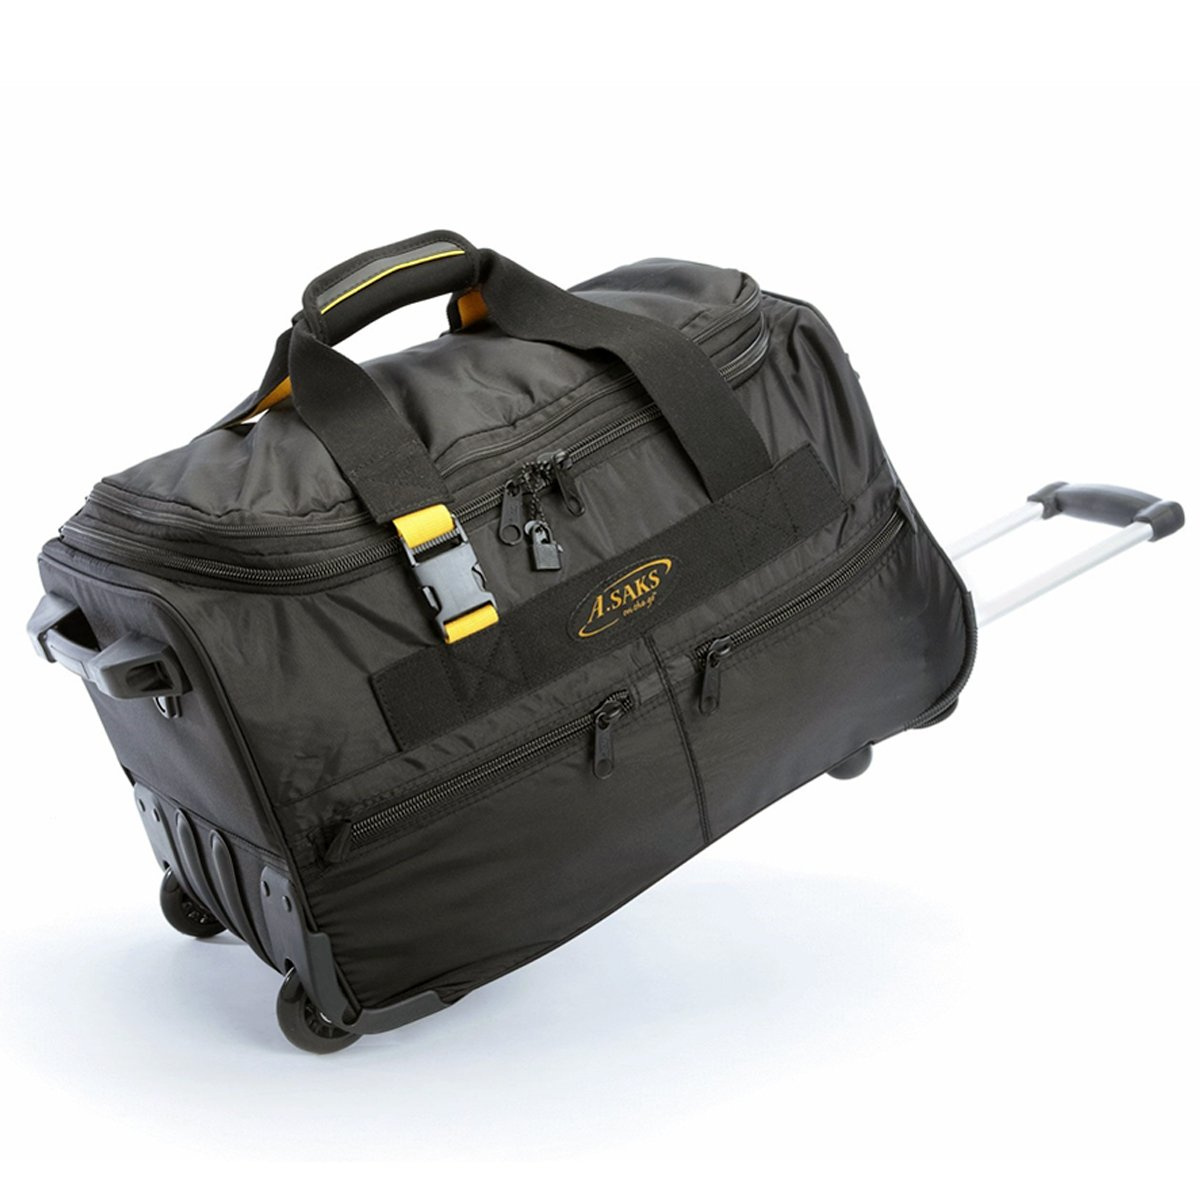 A. Saks AE-20W Expanadable 20 Inch Wheeled Duffel